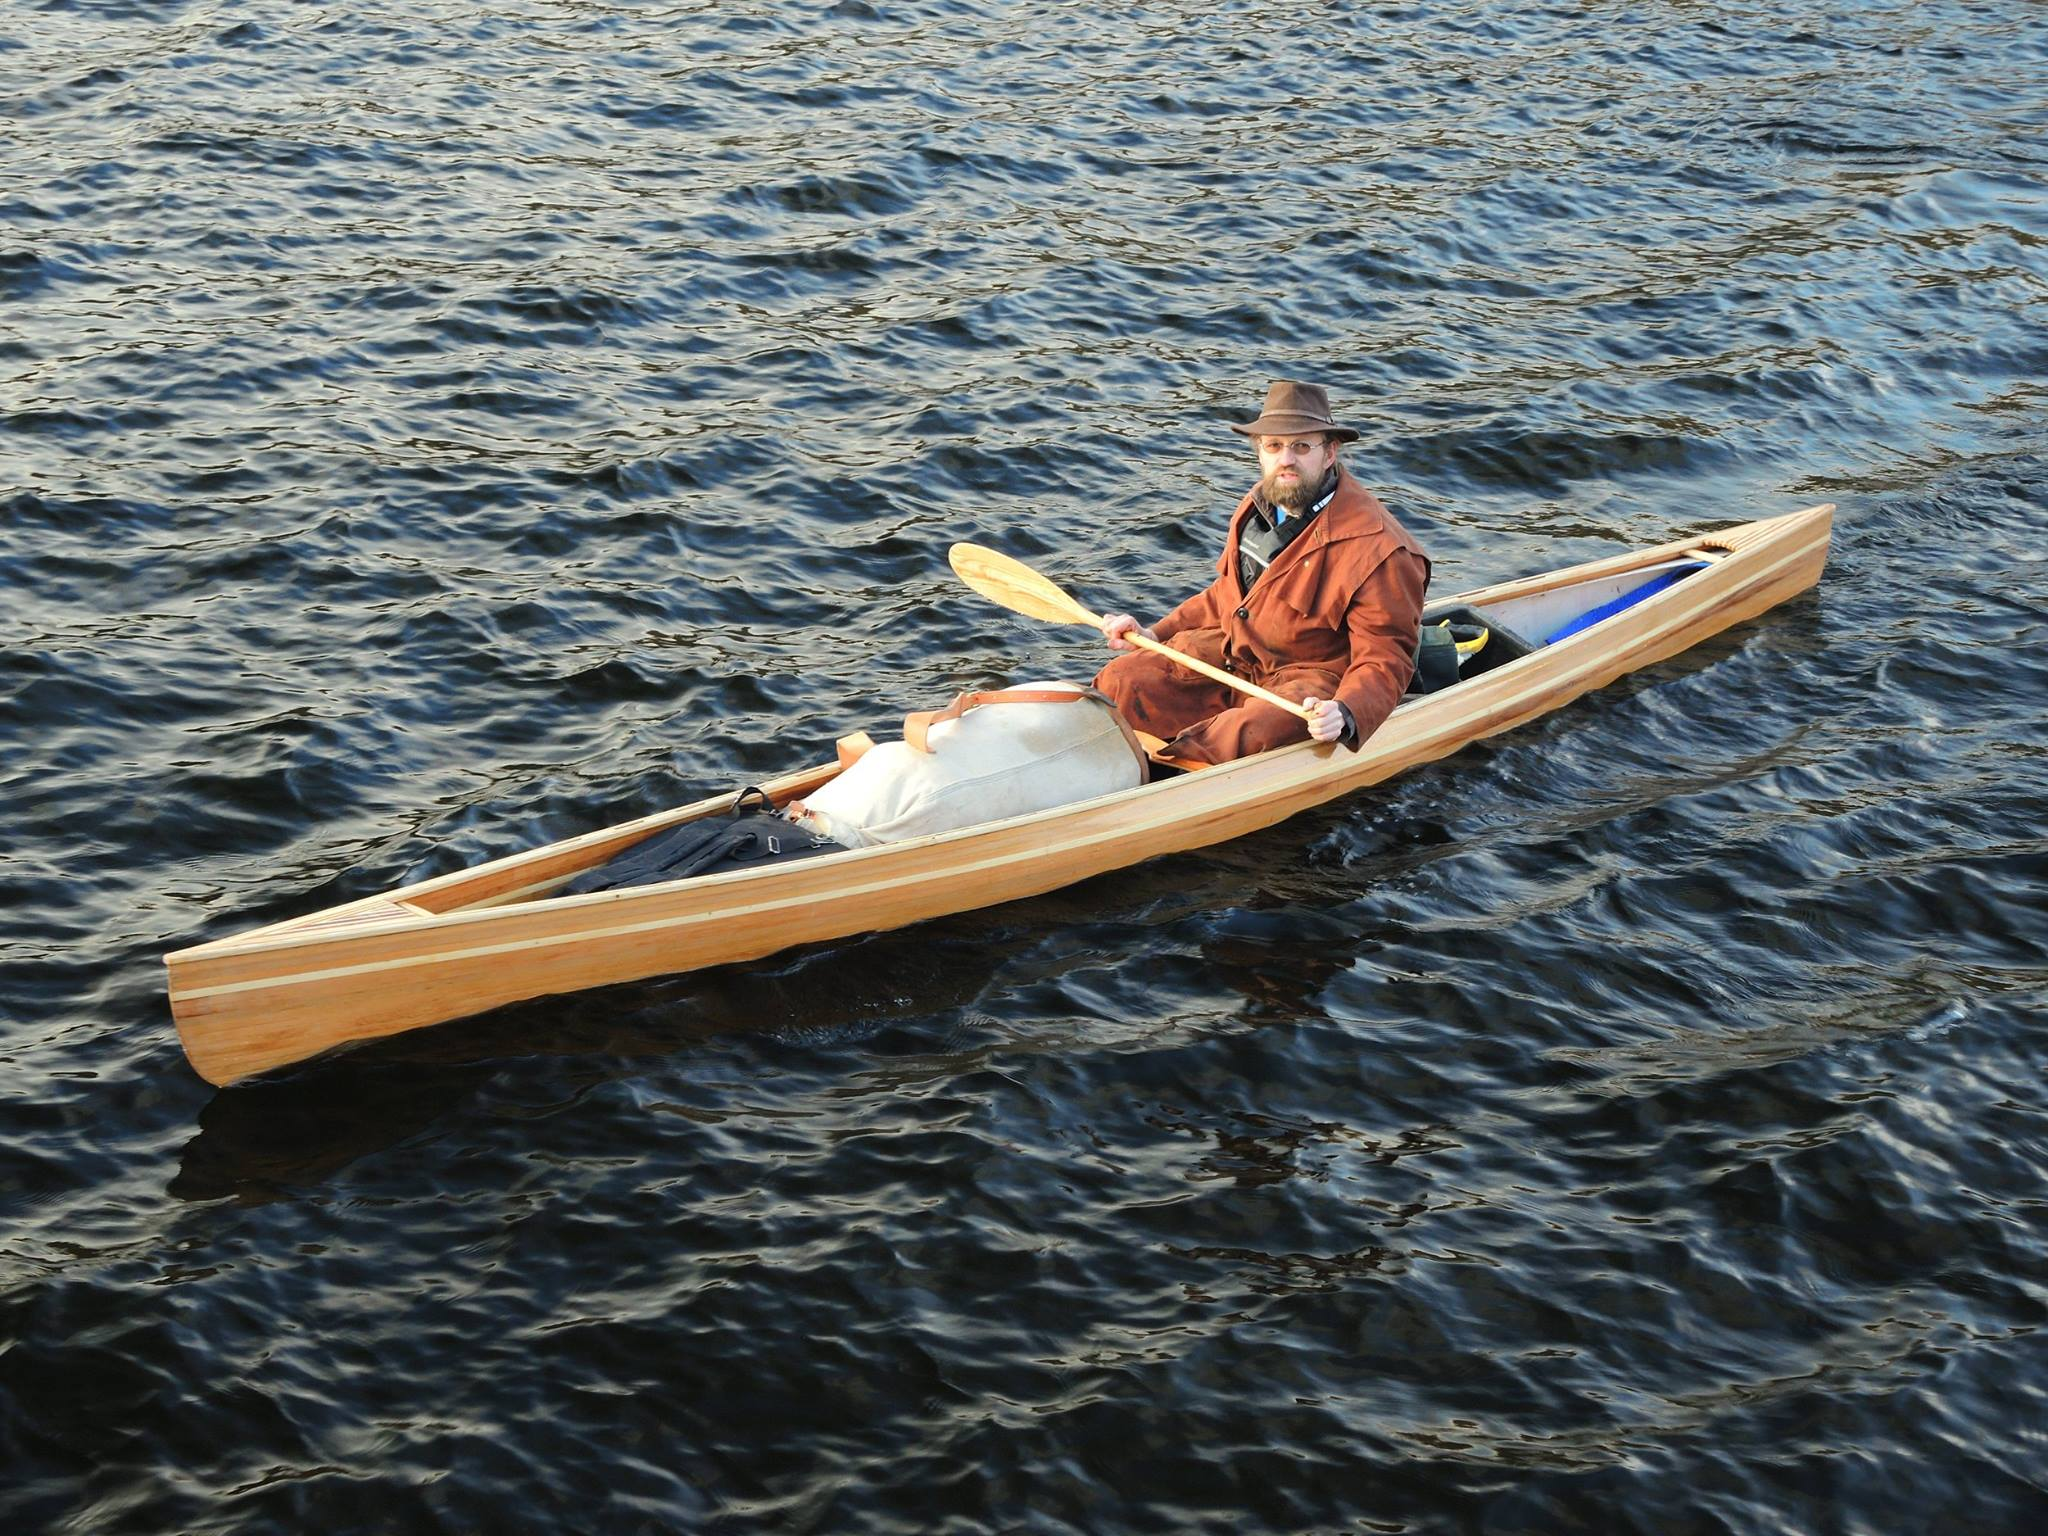 Building Plans for a Lean and Efficient Solo Canoe